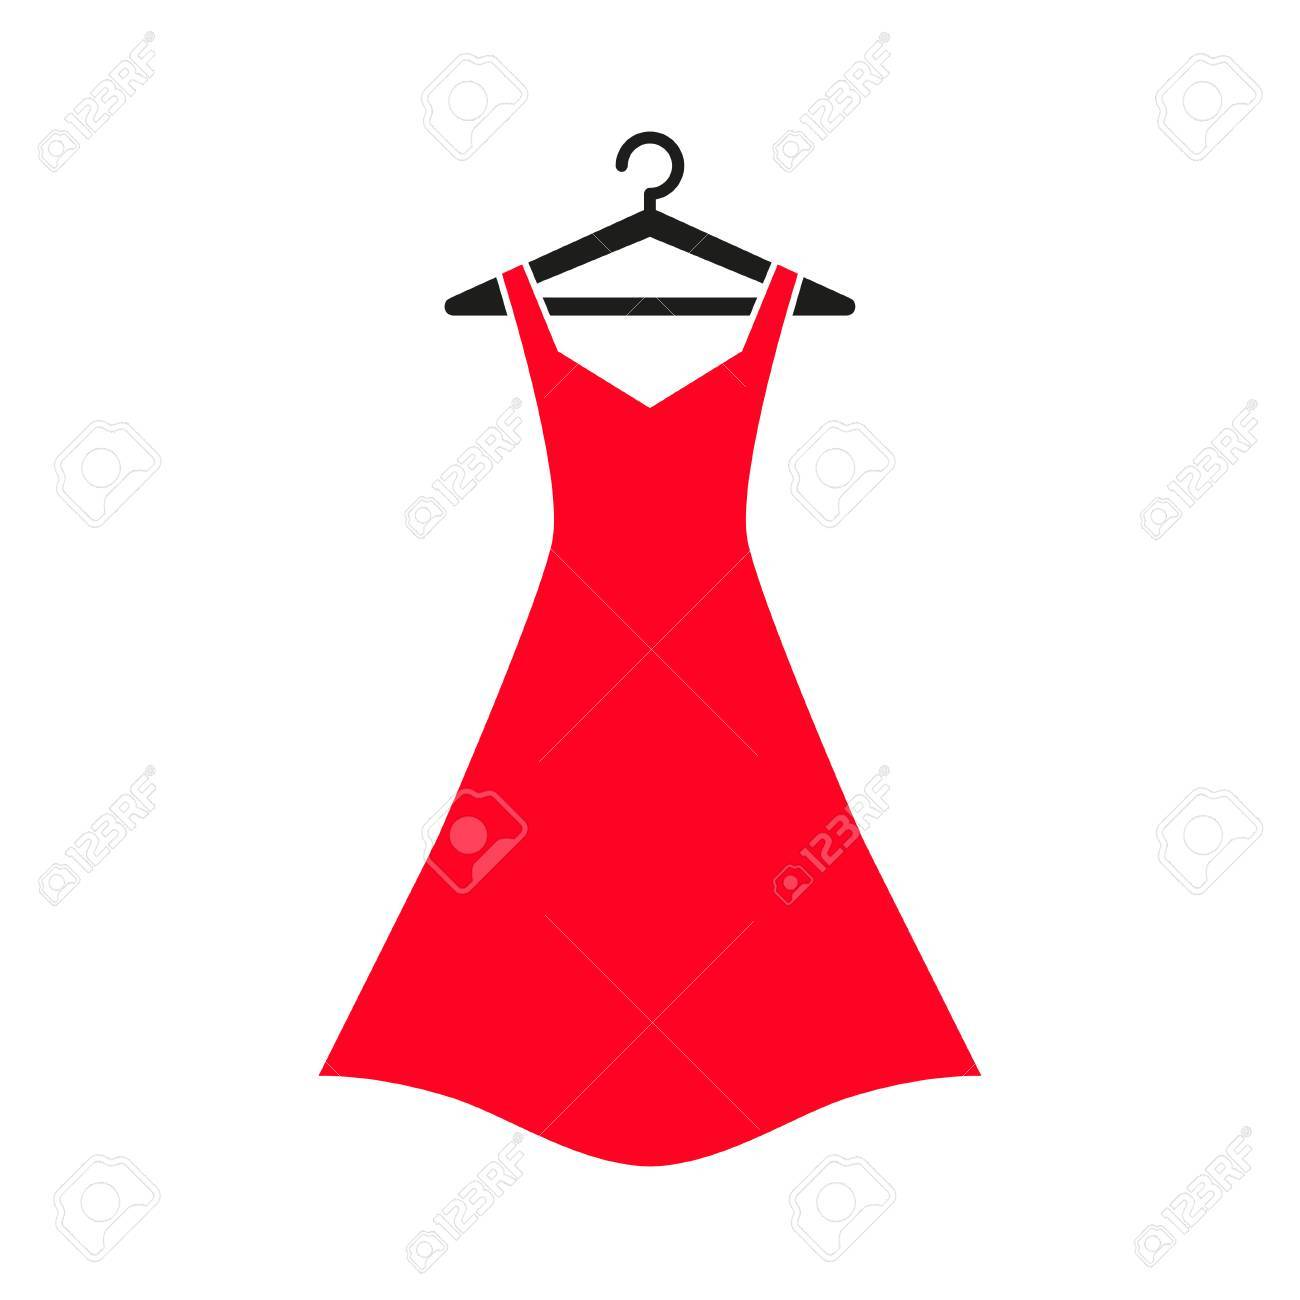 Woman red dress on hanger. Dress Icon - 70779088